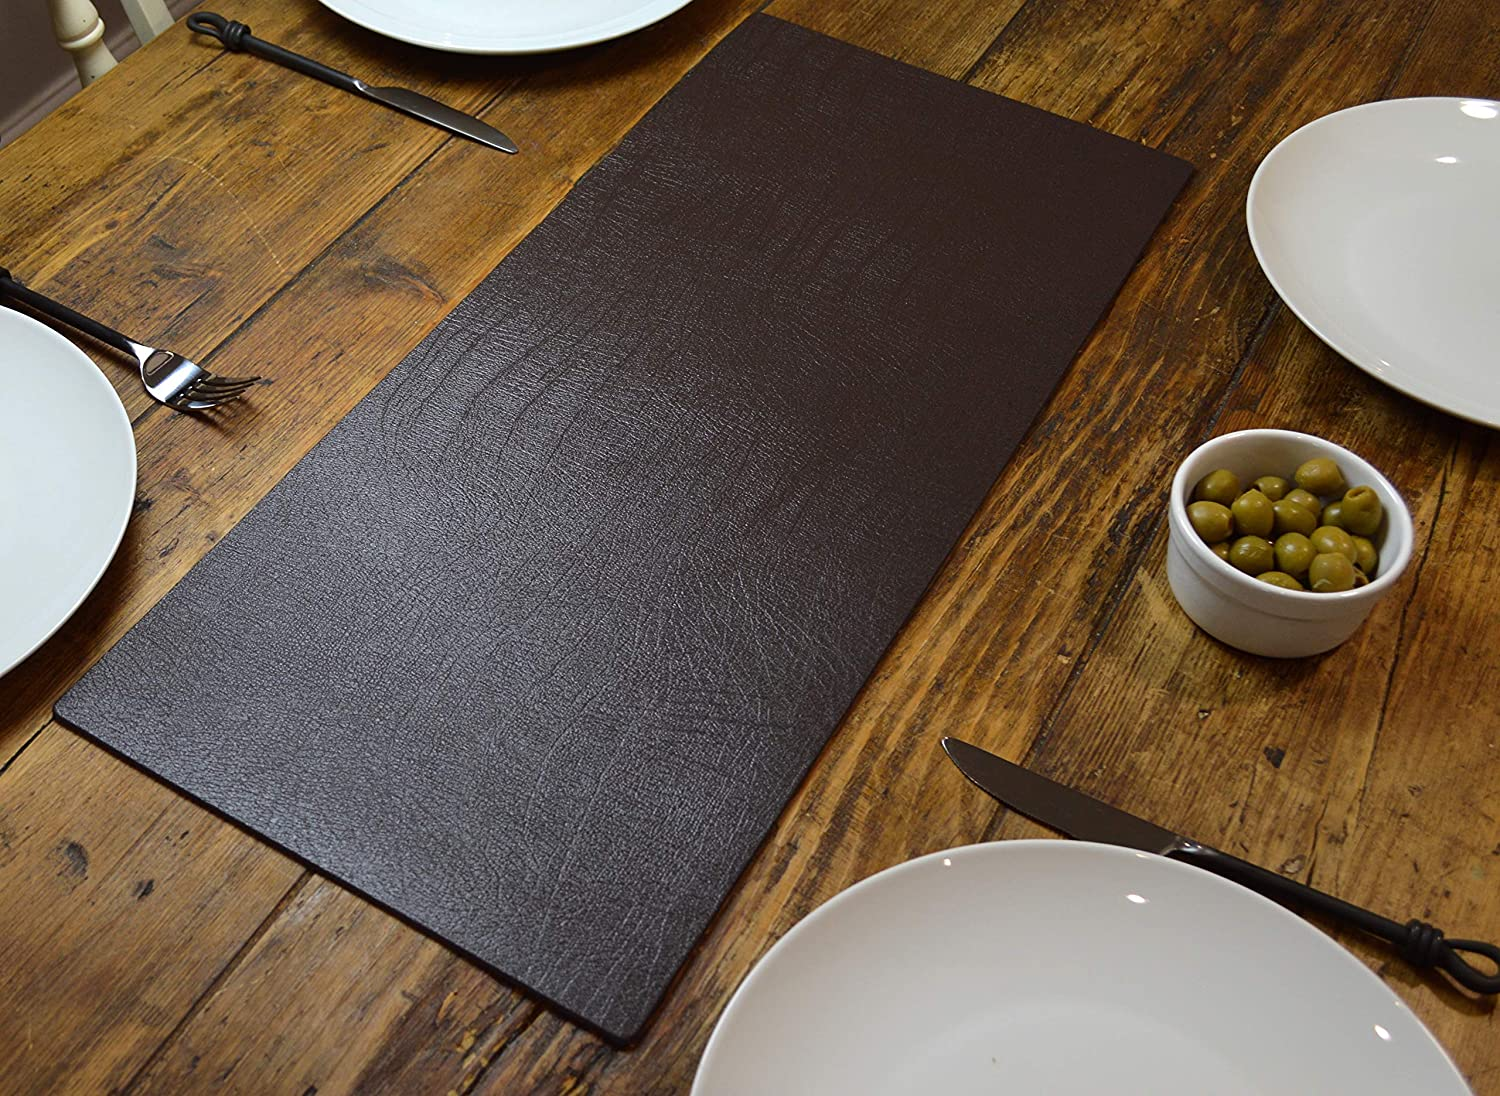 Giftag Artisan Brown Bonded Leather Table Runner Mat Dining Centrepiece,  60cm X 27cm Made In UK: Amazon.co.uk: Kitchen U0026 Home